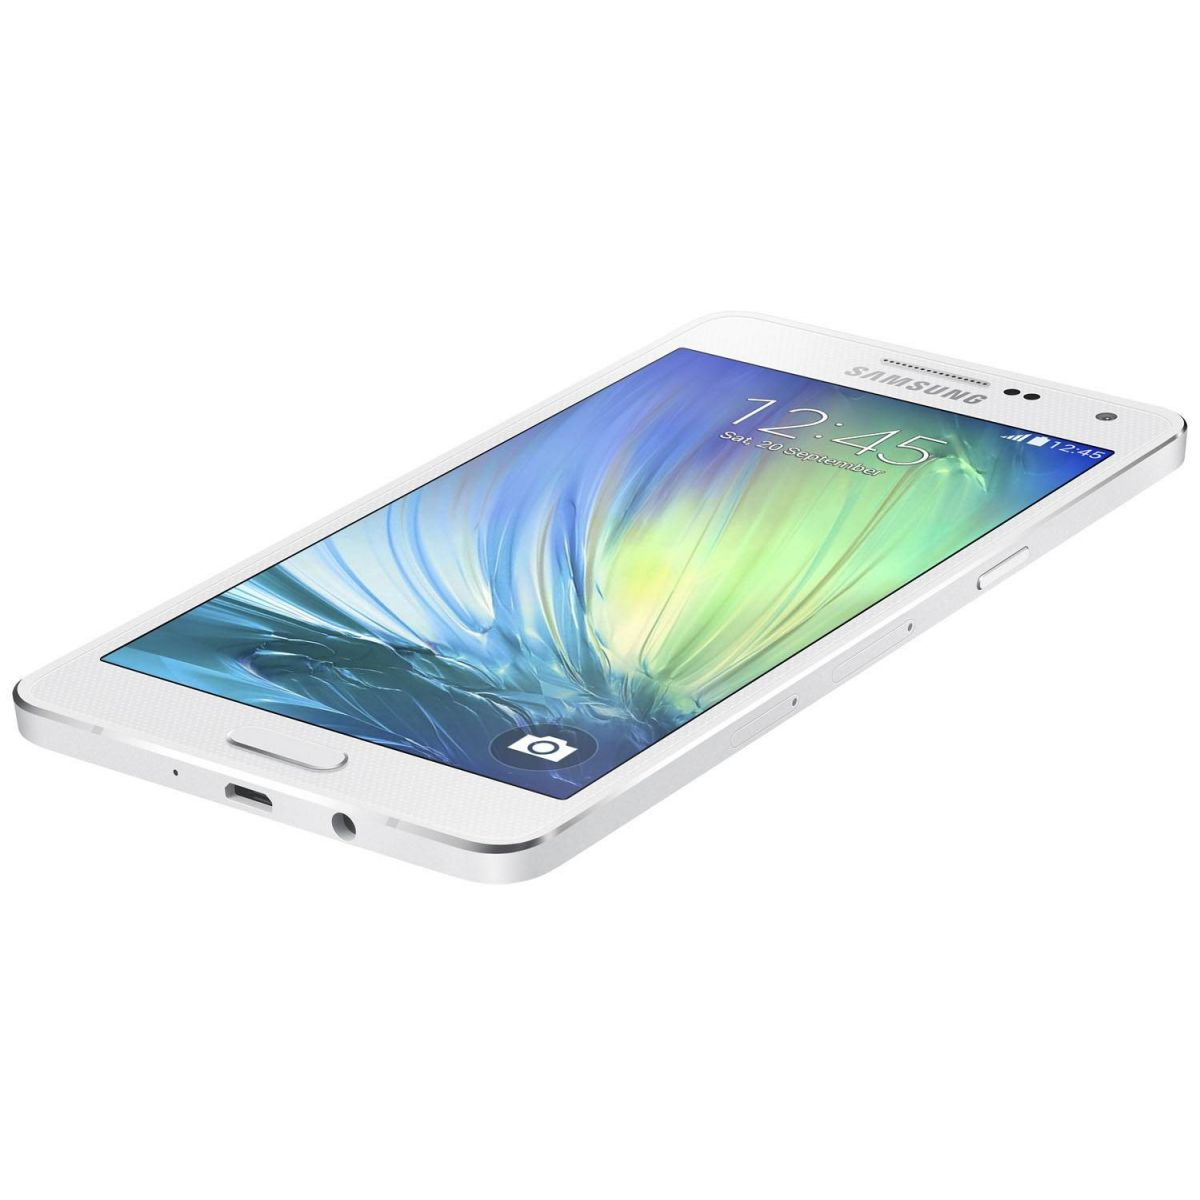 Smartphone Galaxy A5 Duos Dual Chip 4G Android 4.4 Câm. 13MP Tela 5 Proc. Quad Core Branco SM-A500M/DS - Samsung